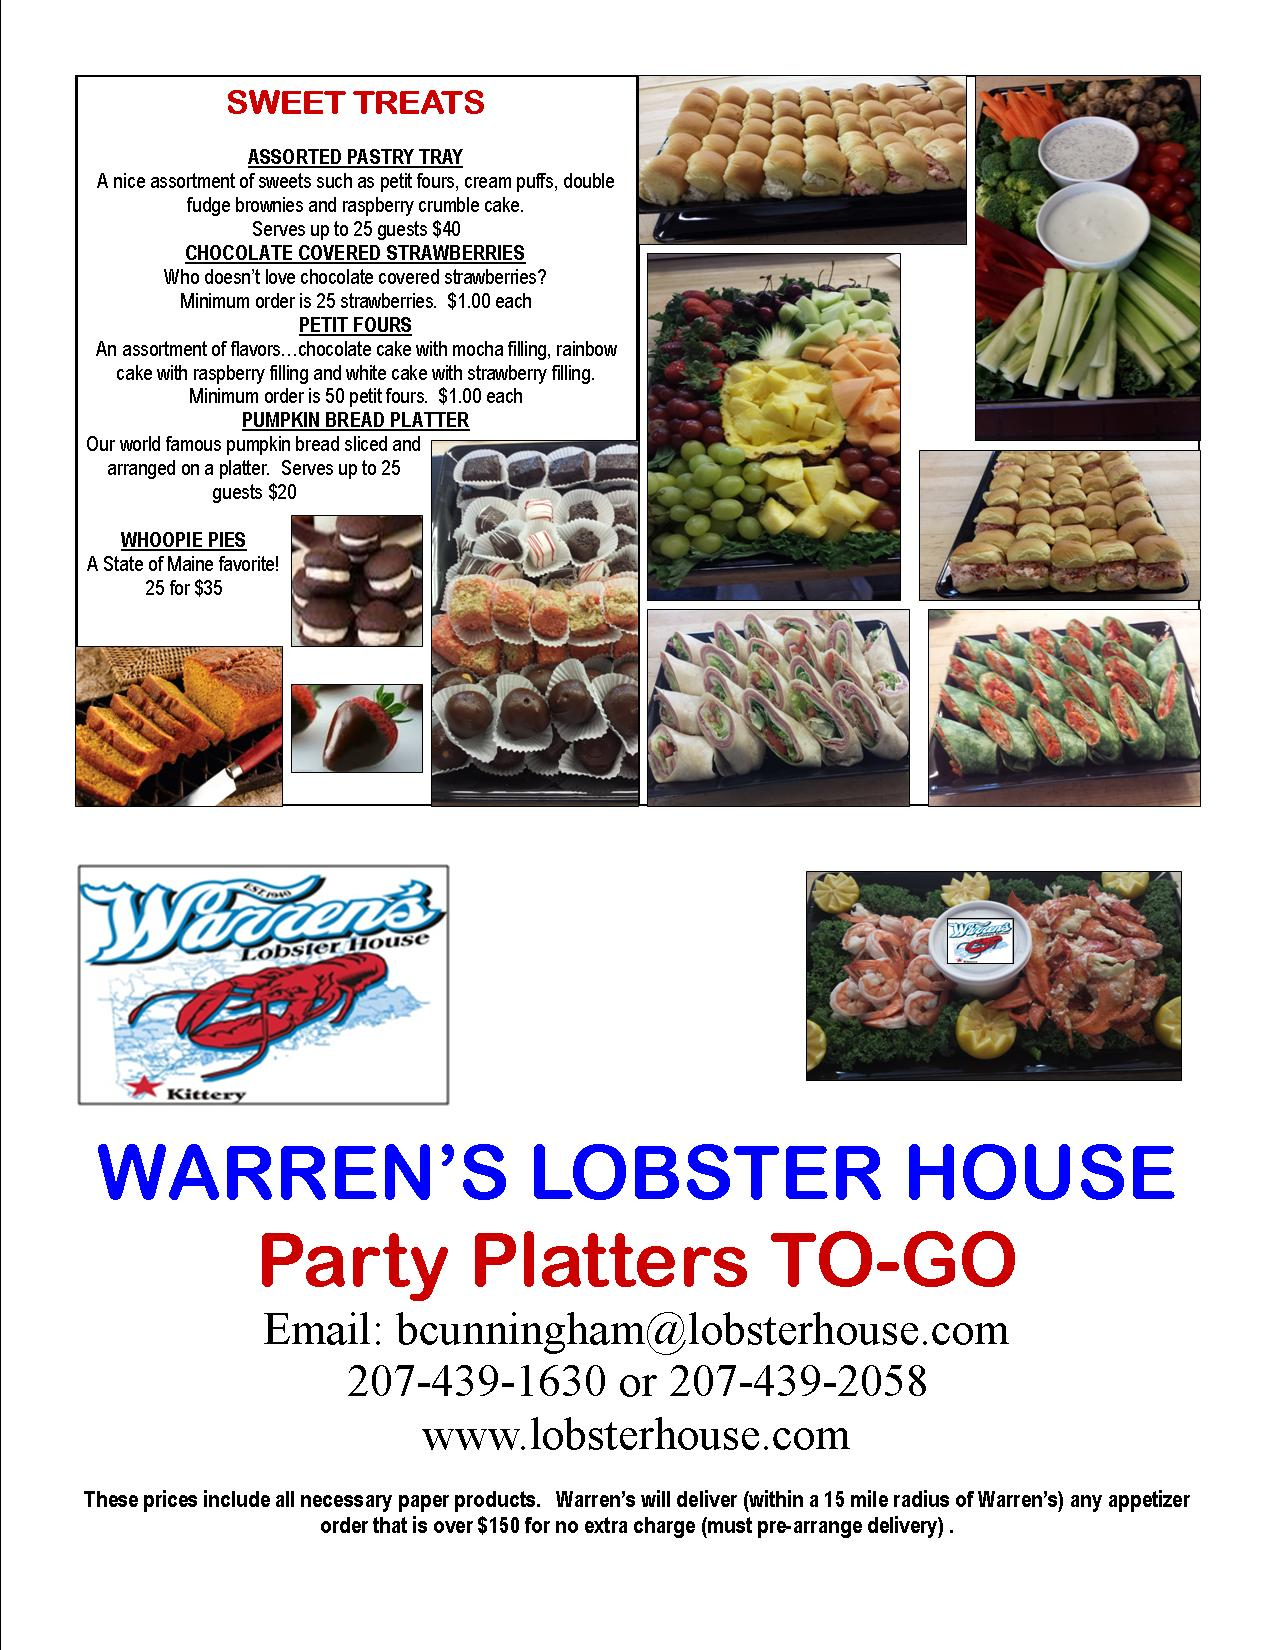 White apron cafe portsmouth nh